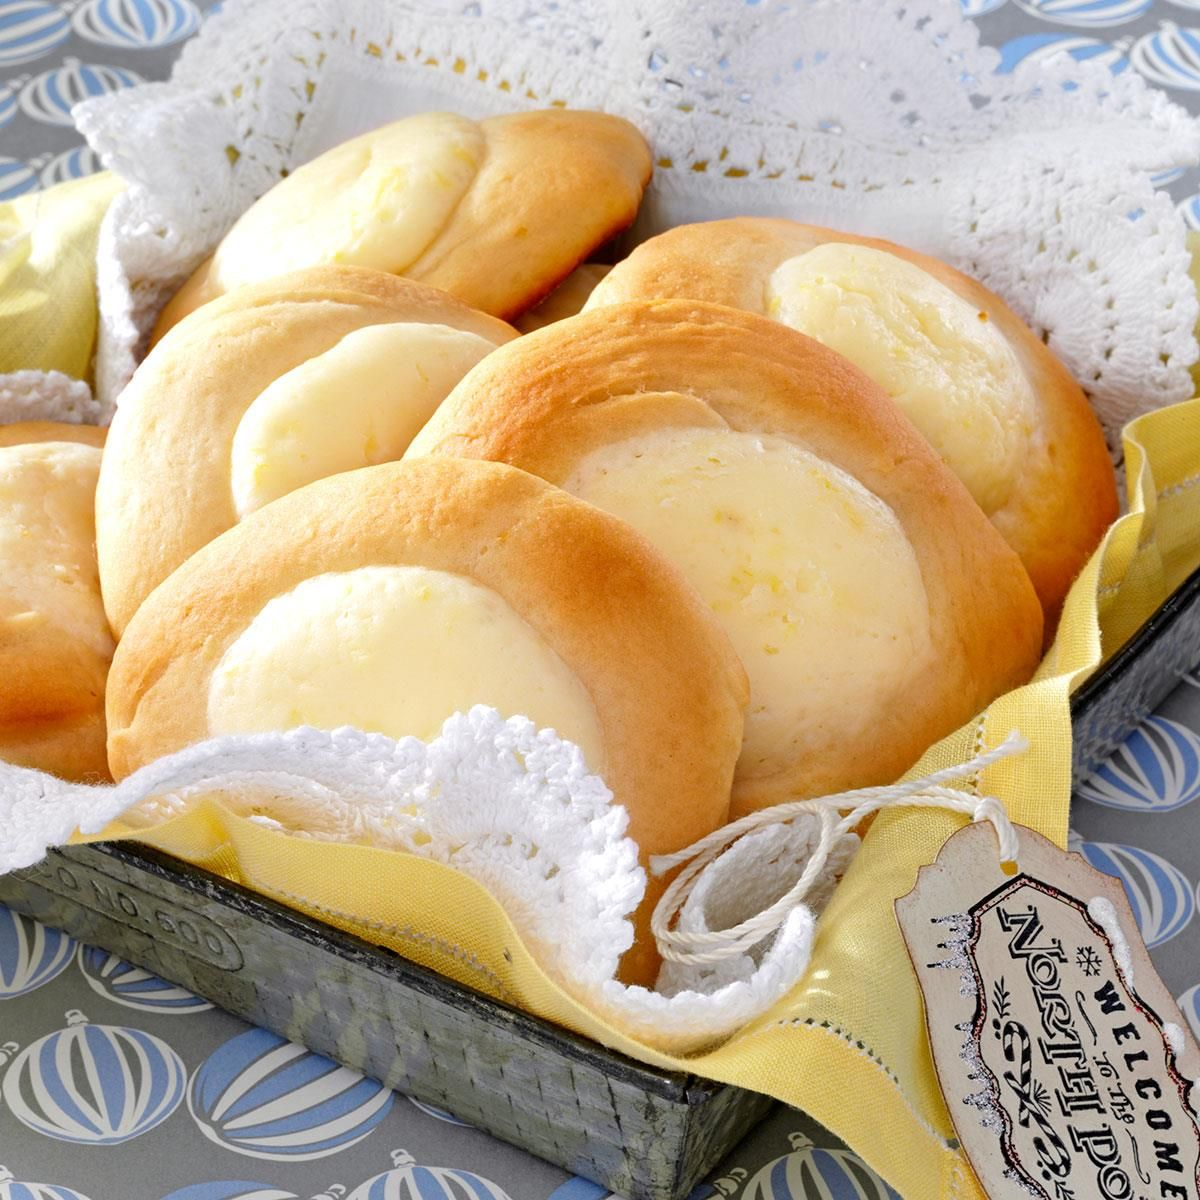 Lemon Kolaches Recipe -I love to bake and try new recipes. These soft rolls are a favorite. I like to experiment by adding different flavors to the creamy filling. —Eileen Weitnauer, Aitkin, Minnesota